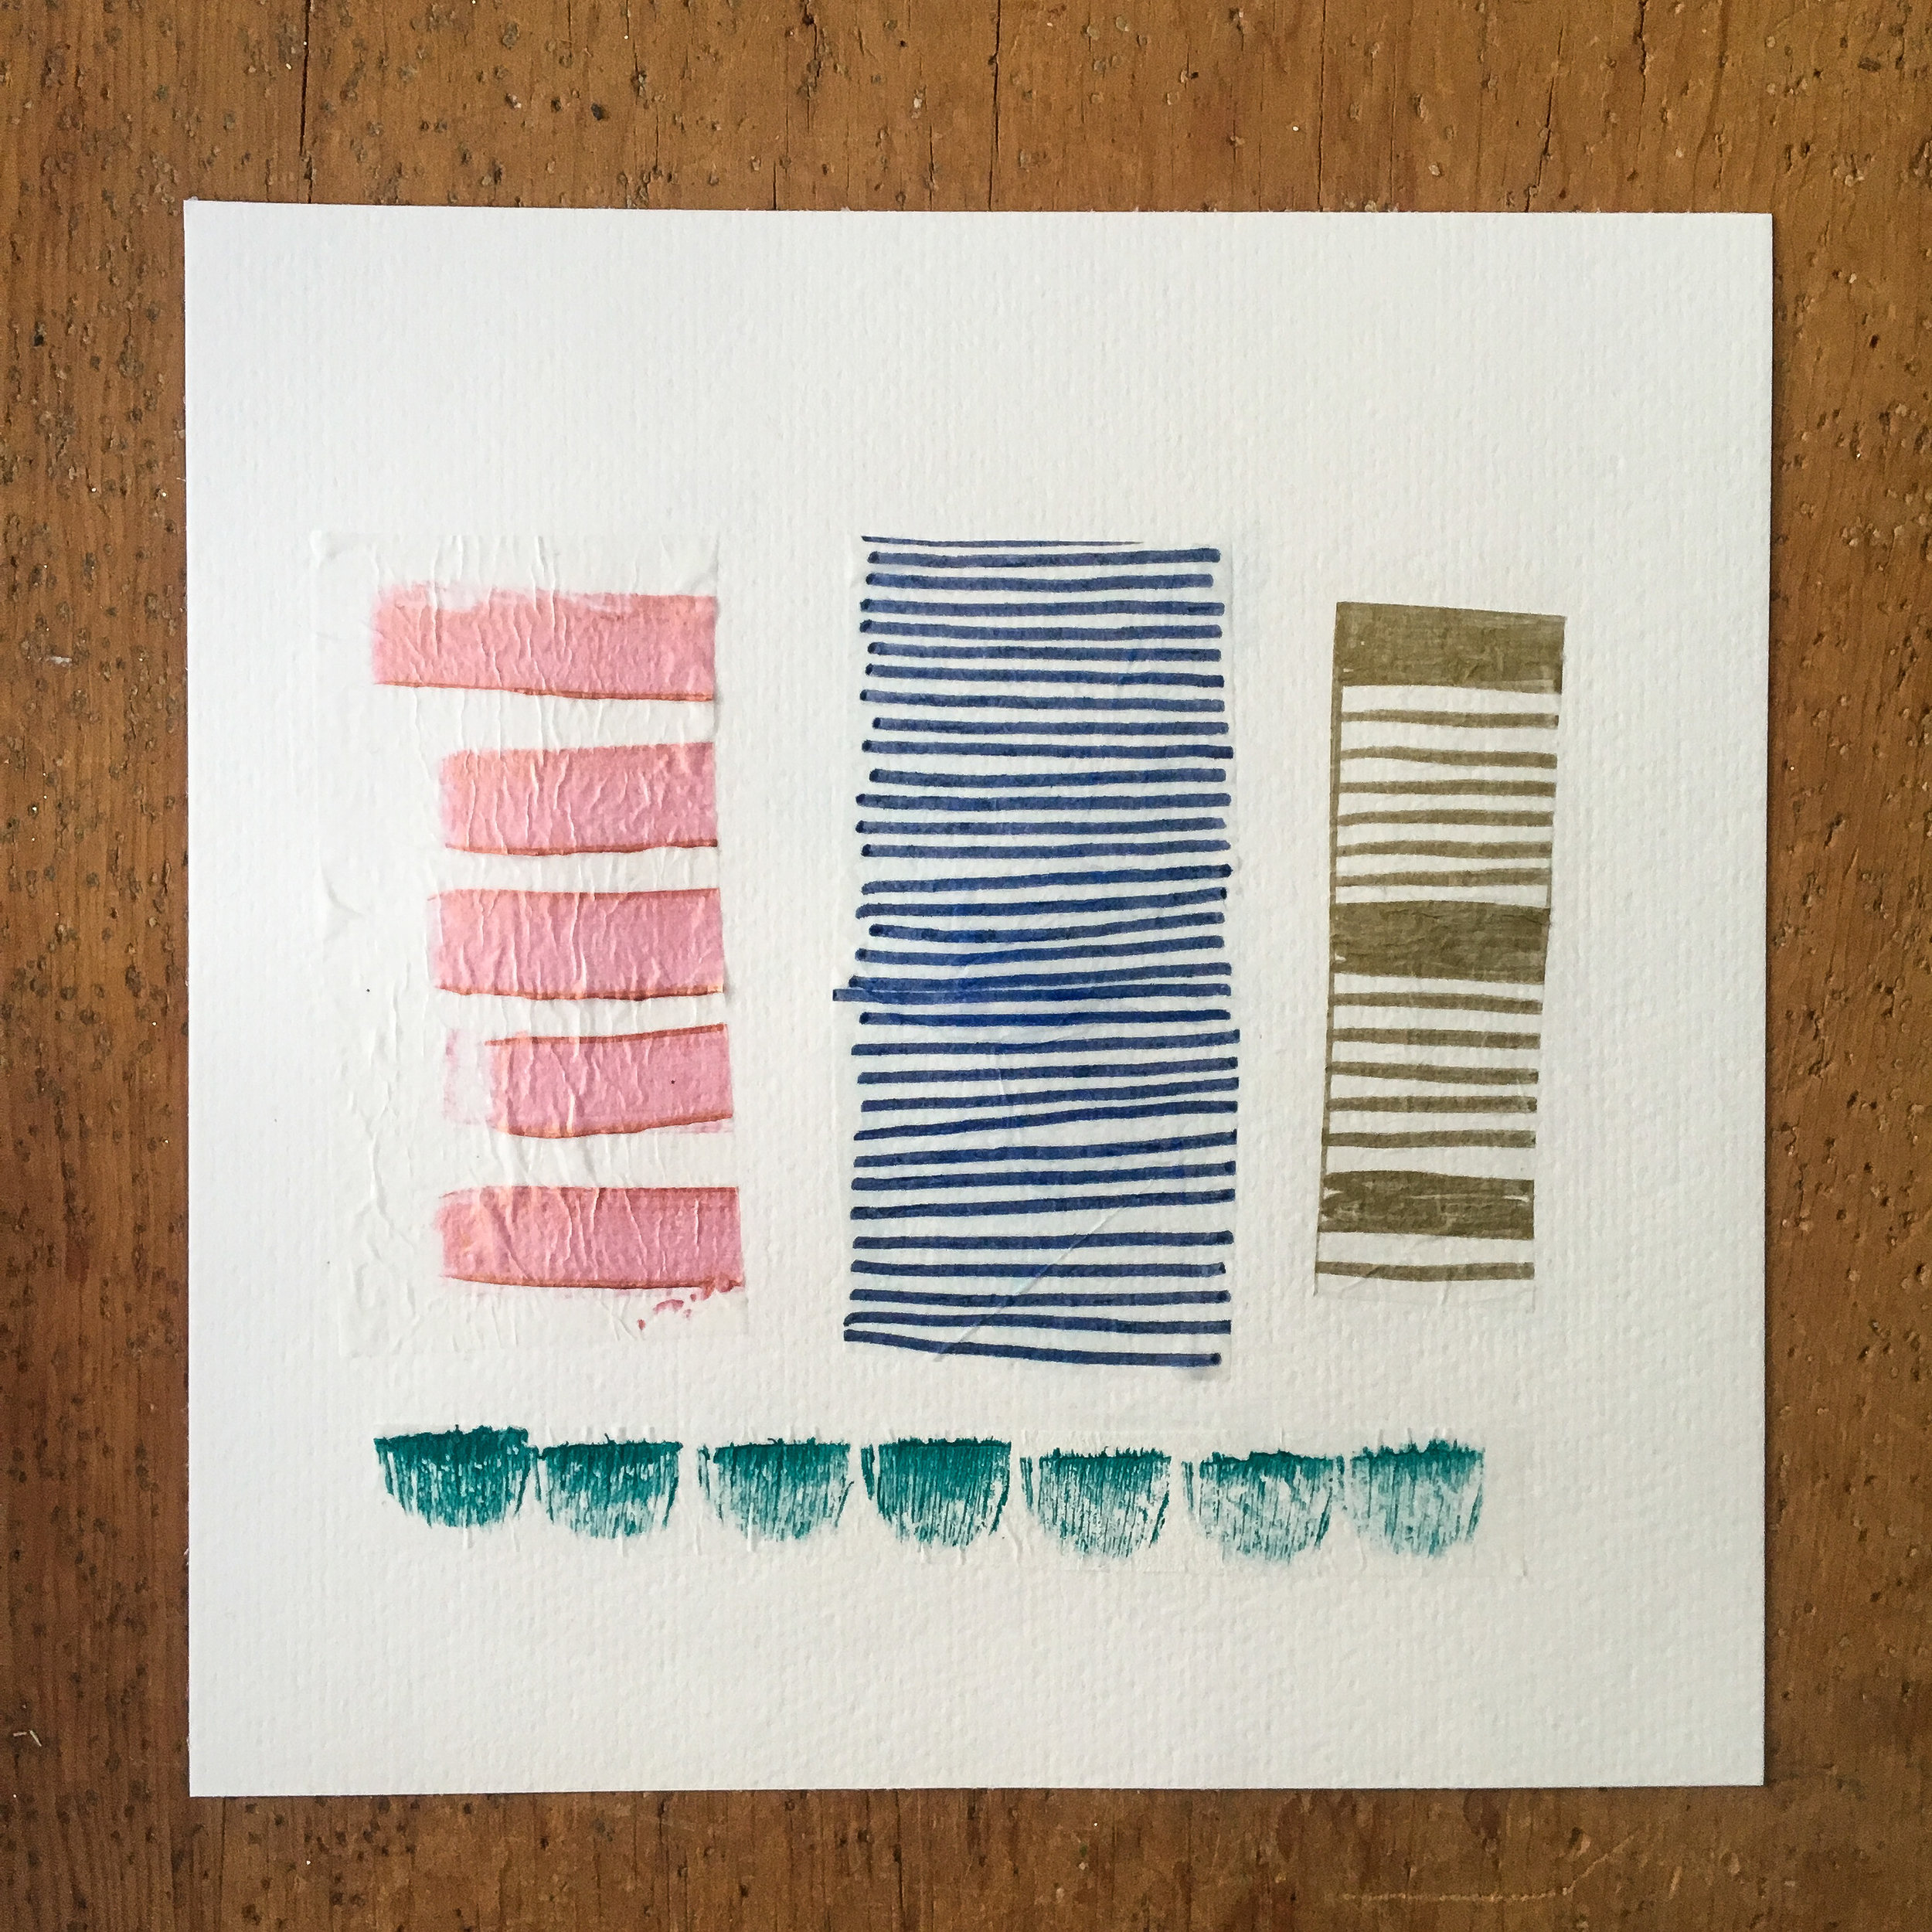 Celebrating wellness || an abstract collage mini-series || Rachel Loewens Fine Art